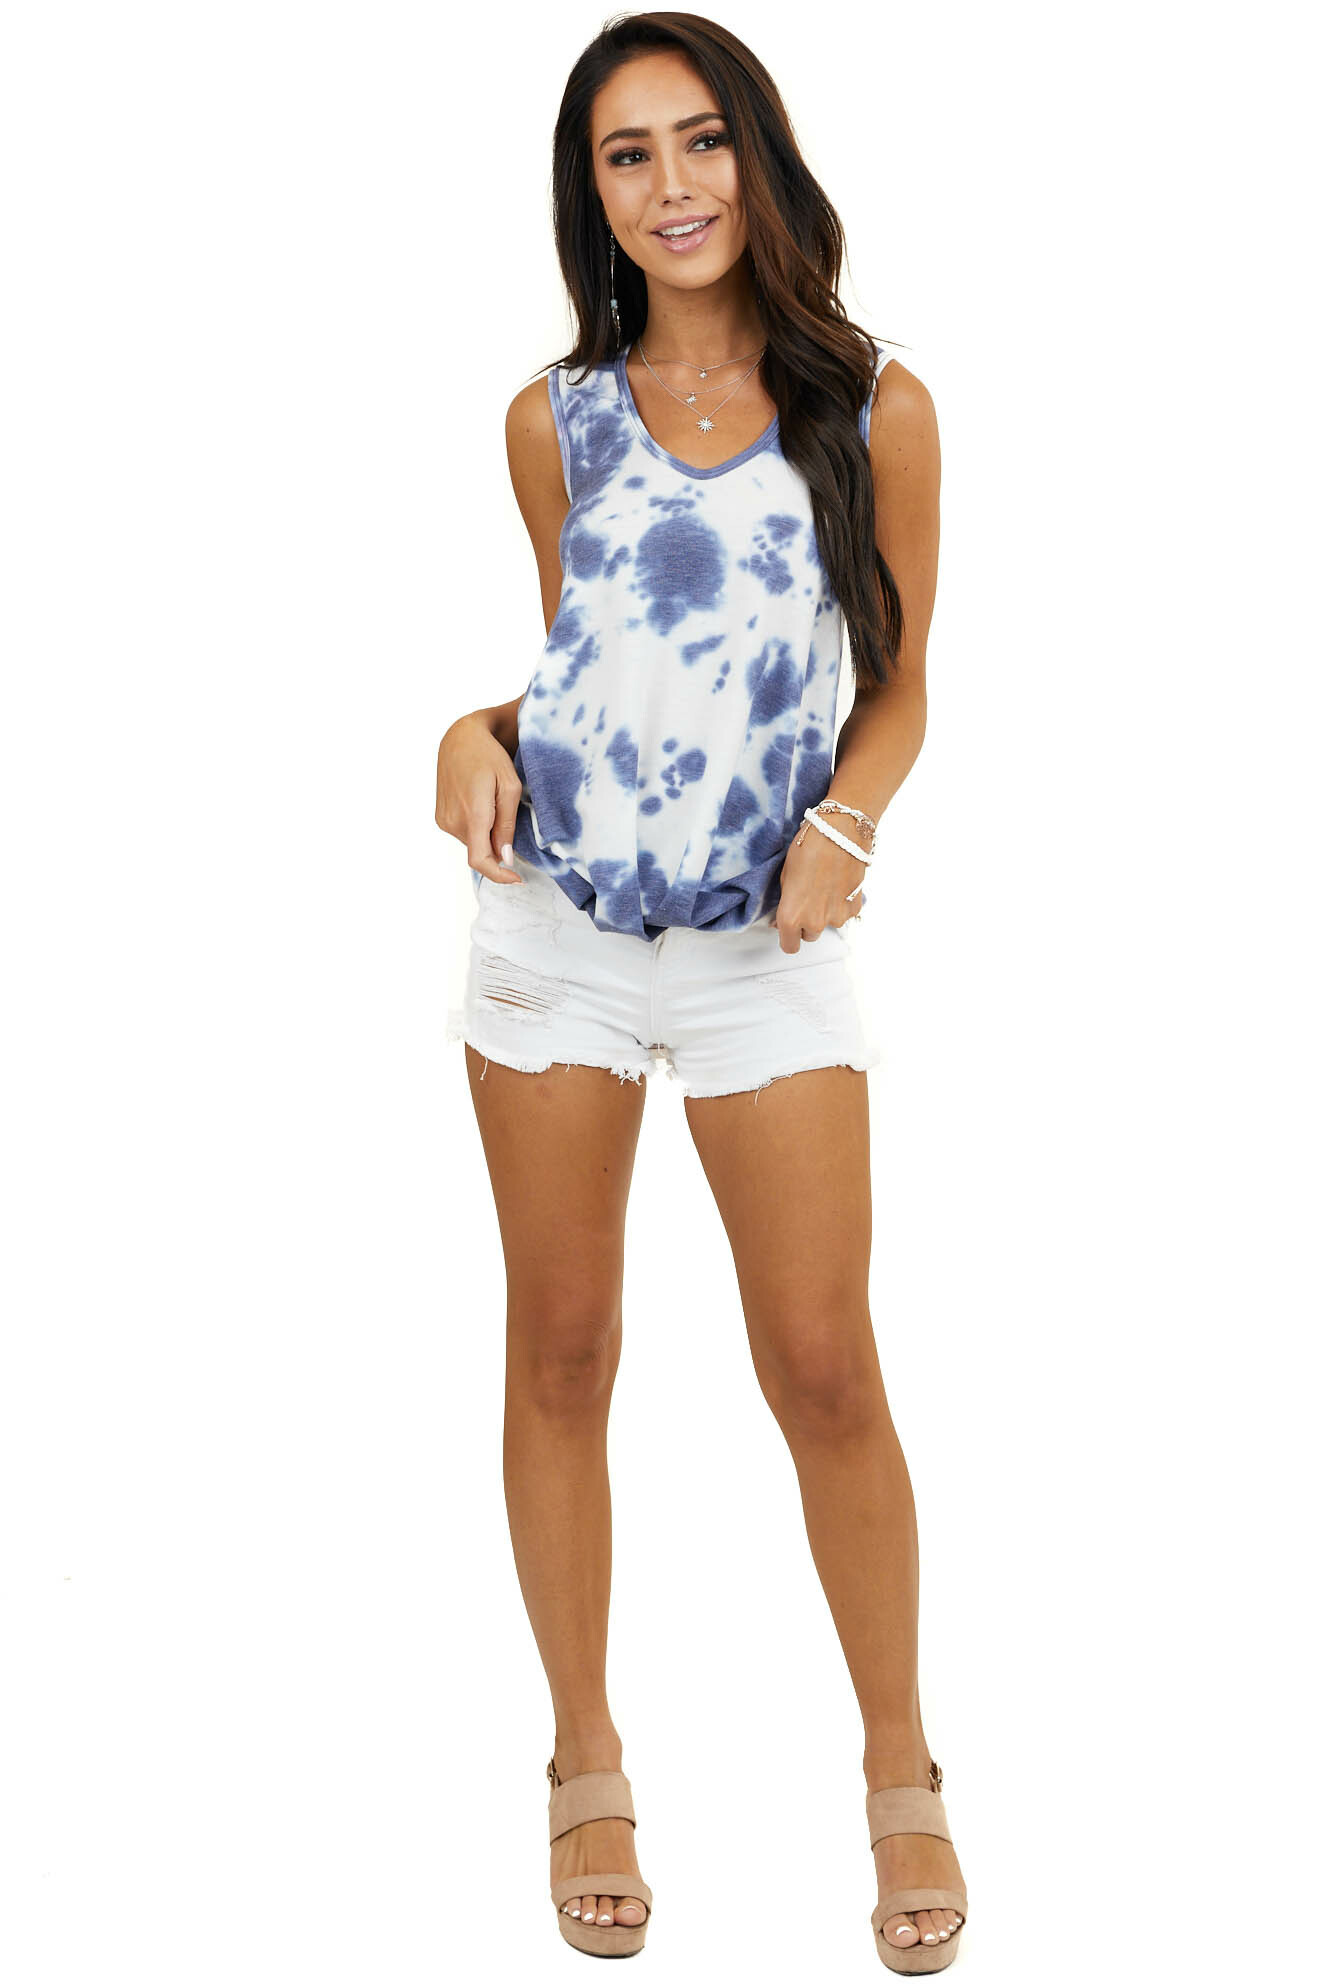 Dusty Blue Tie Dye Sleeveless Top with Front Gathered Detail